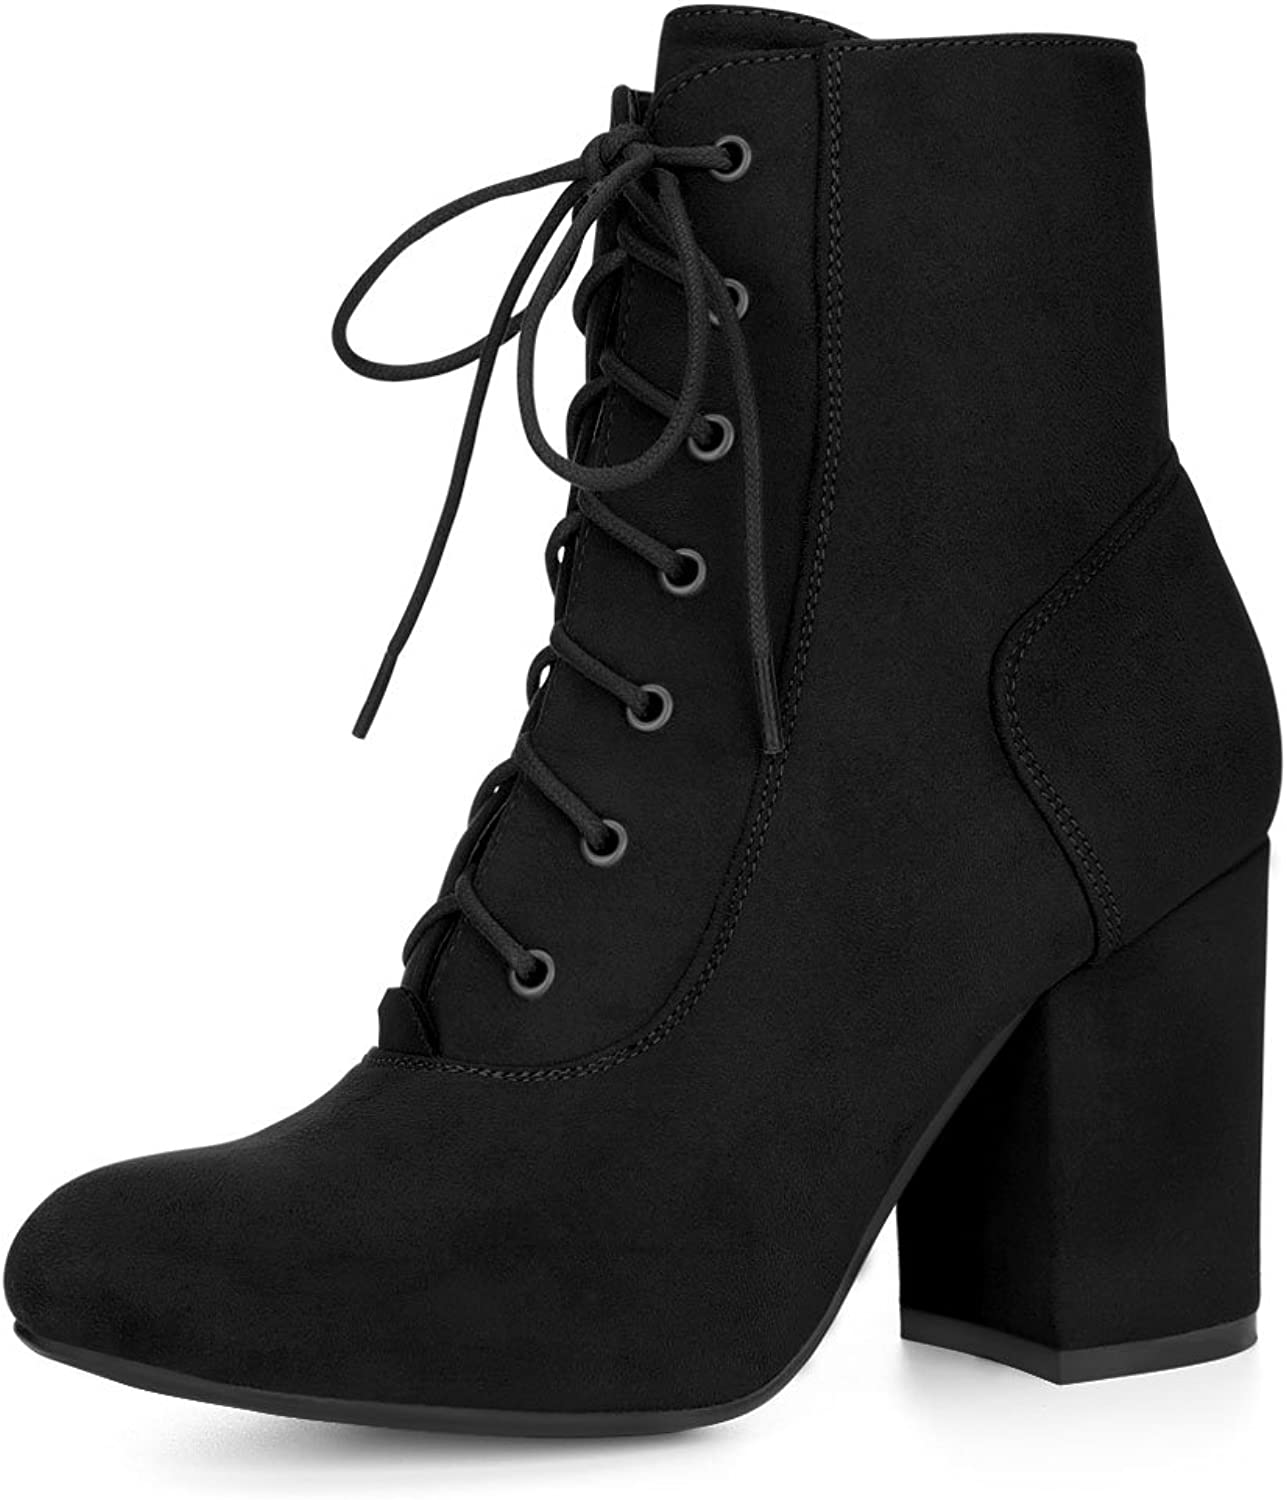 Allegra K Women's Lace up Chunky Heel Ankle Bootie